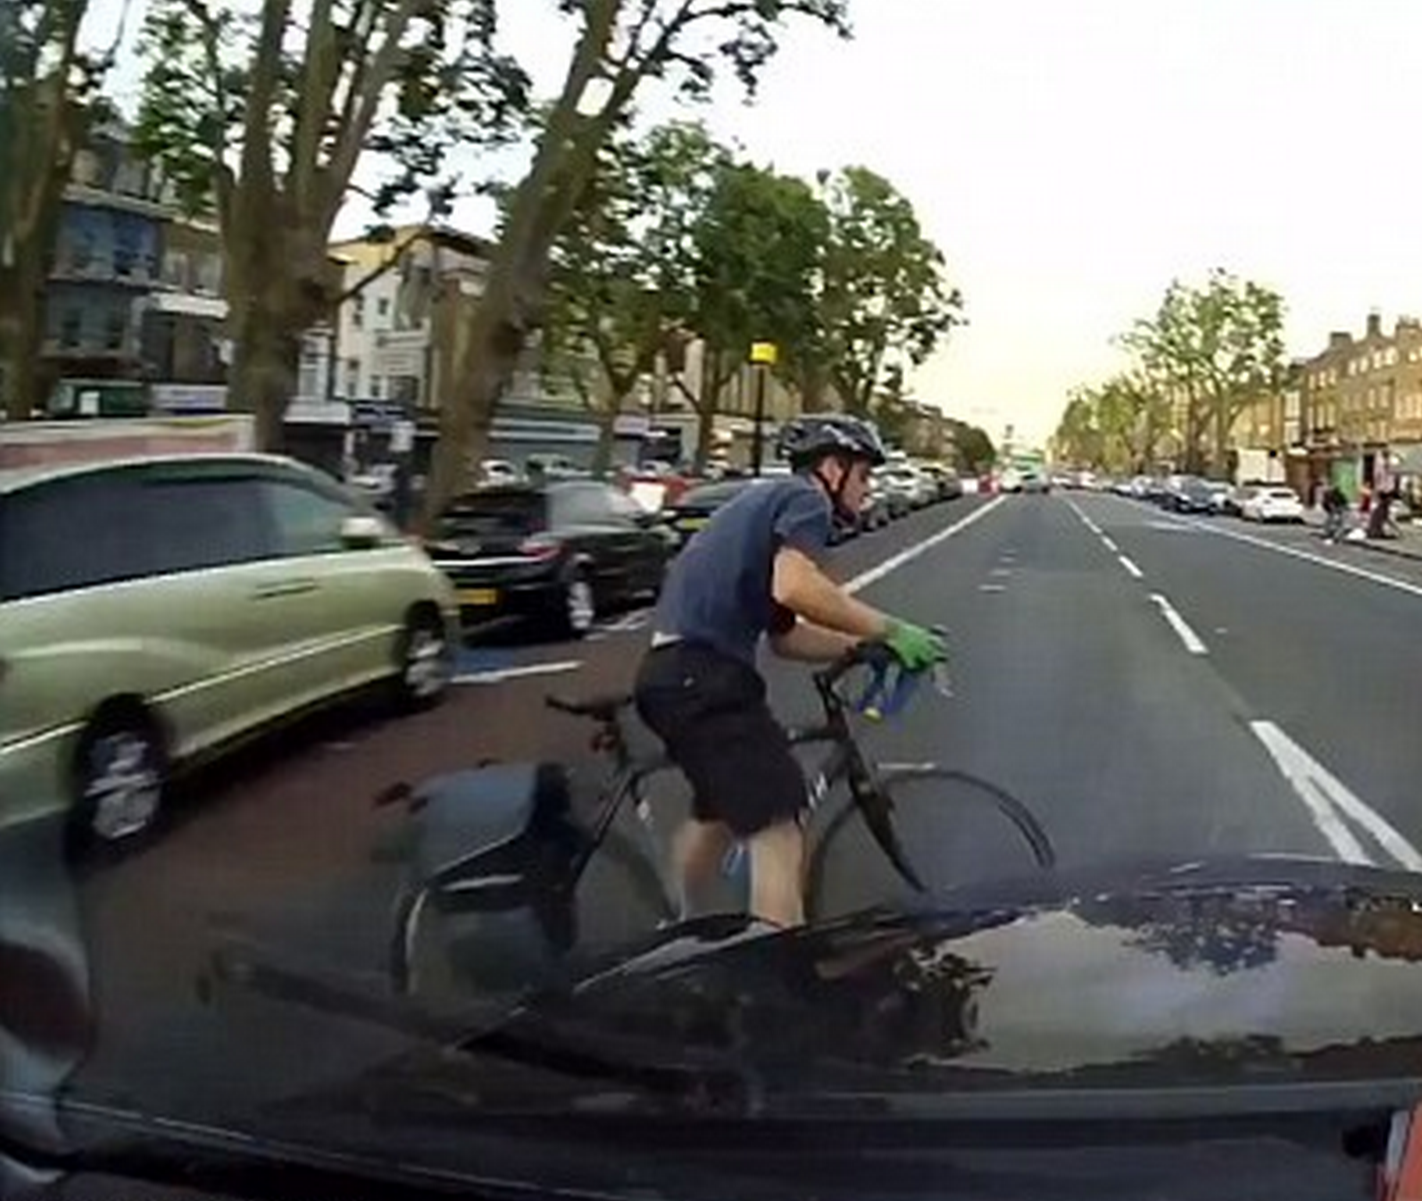 Shocking Moment Cyclist Swerves Car Door And Gets Hit By Taxi